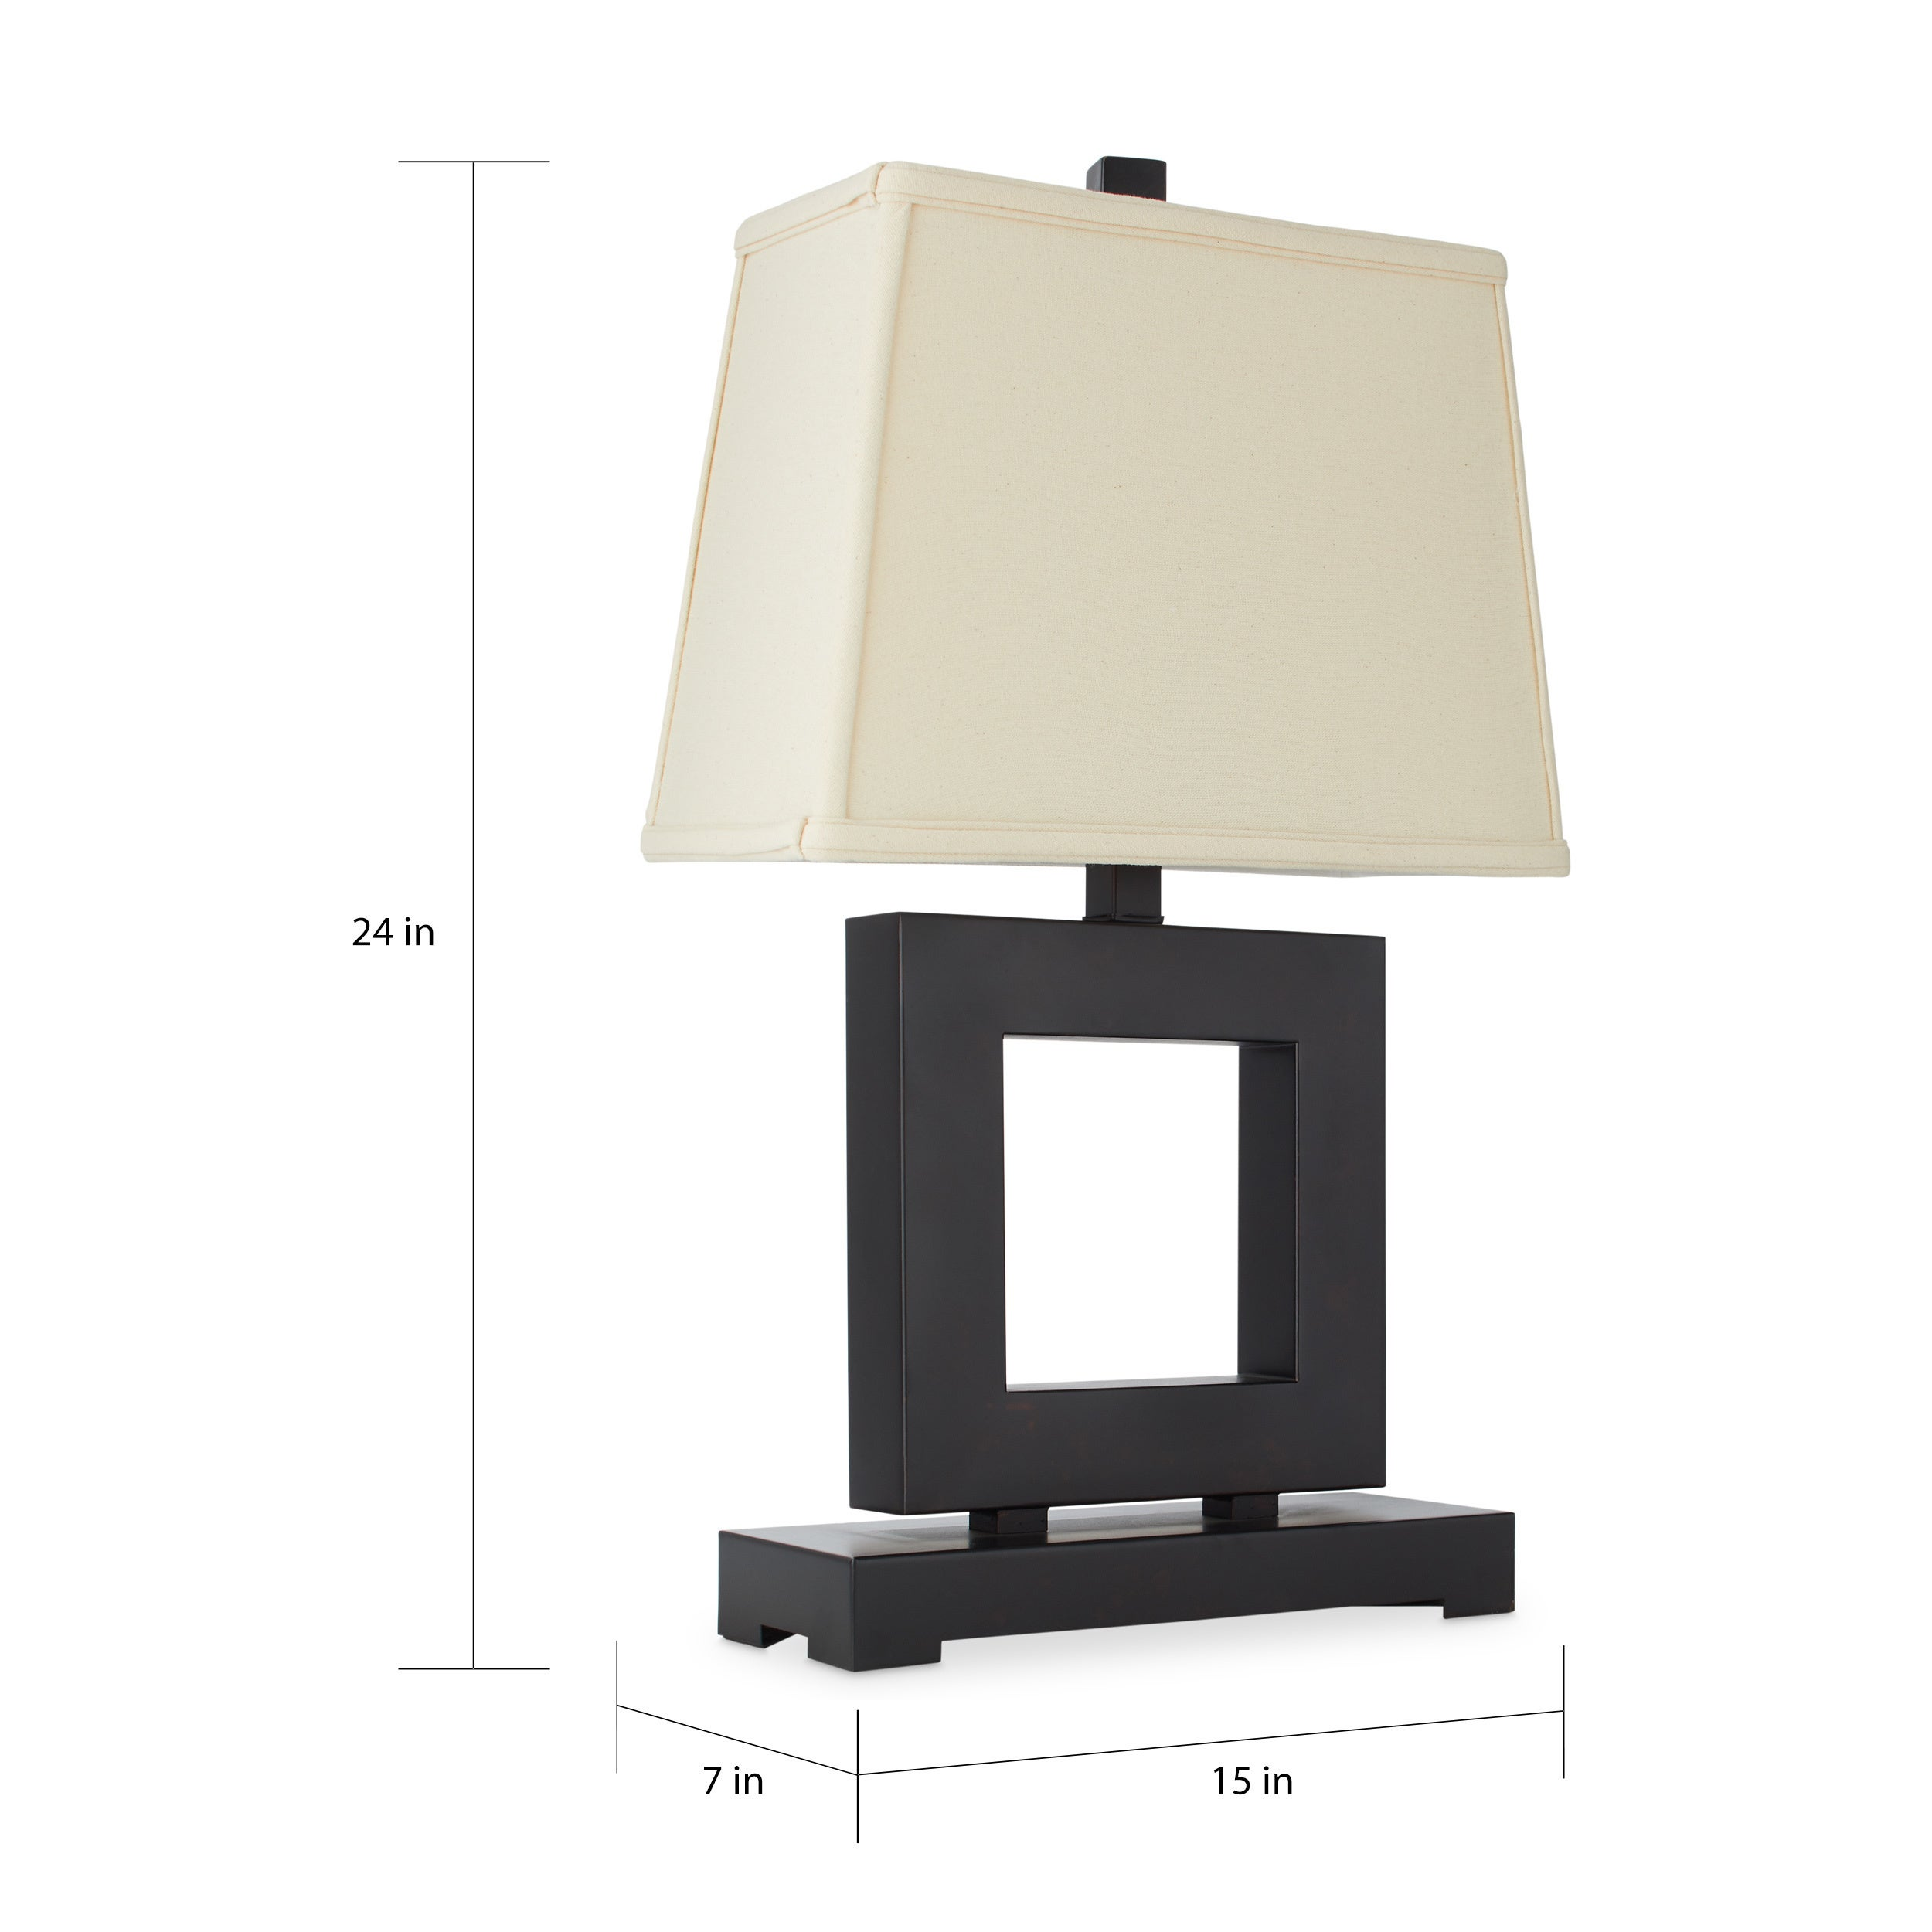 Beautiful Patina/Bronze Metal Square Table Lamp   Free Shipping Today   Overstock.com    10357805